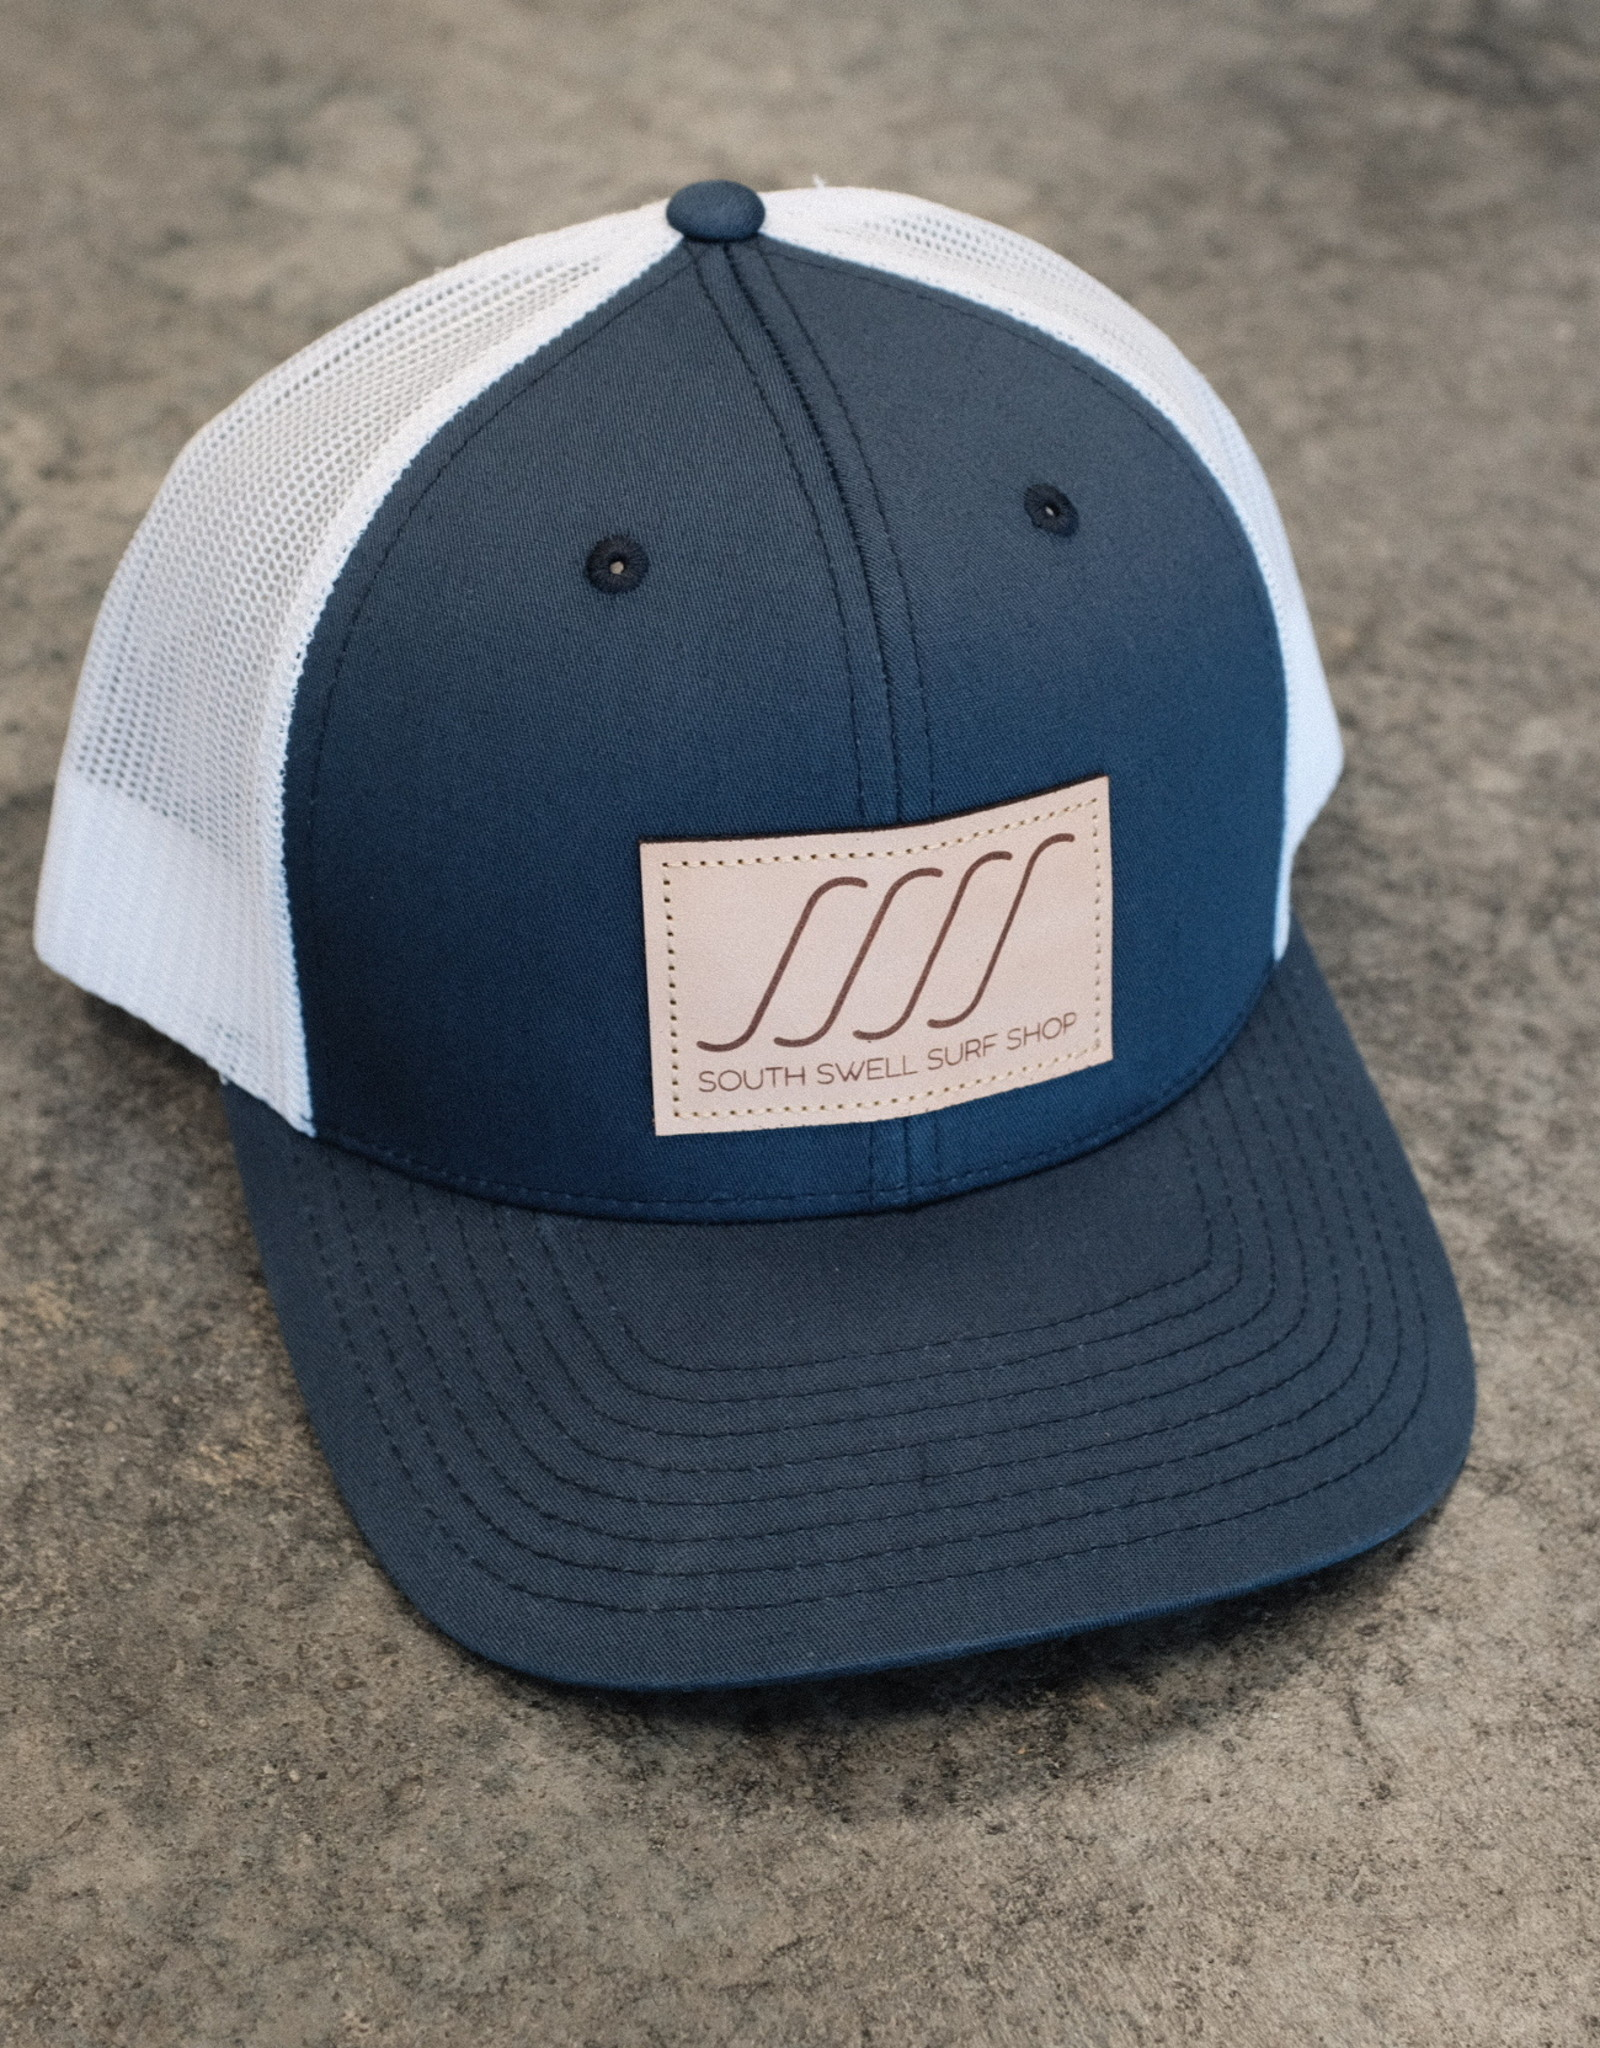 South Swell Surf Shop SSSS Leather Patch Trucker Hat